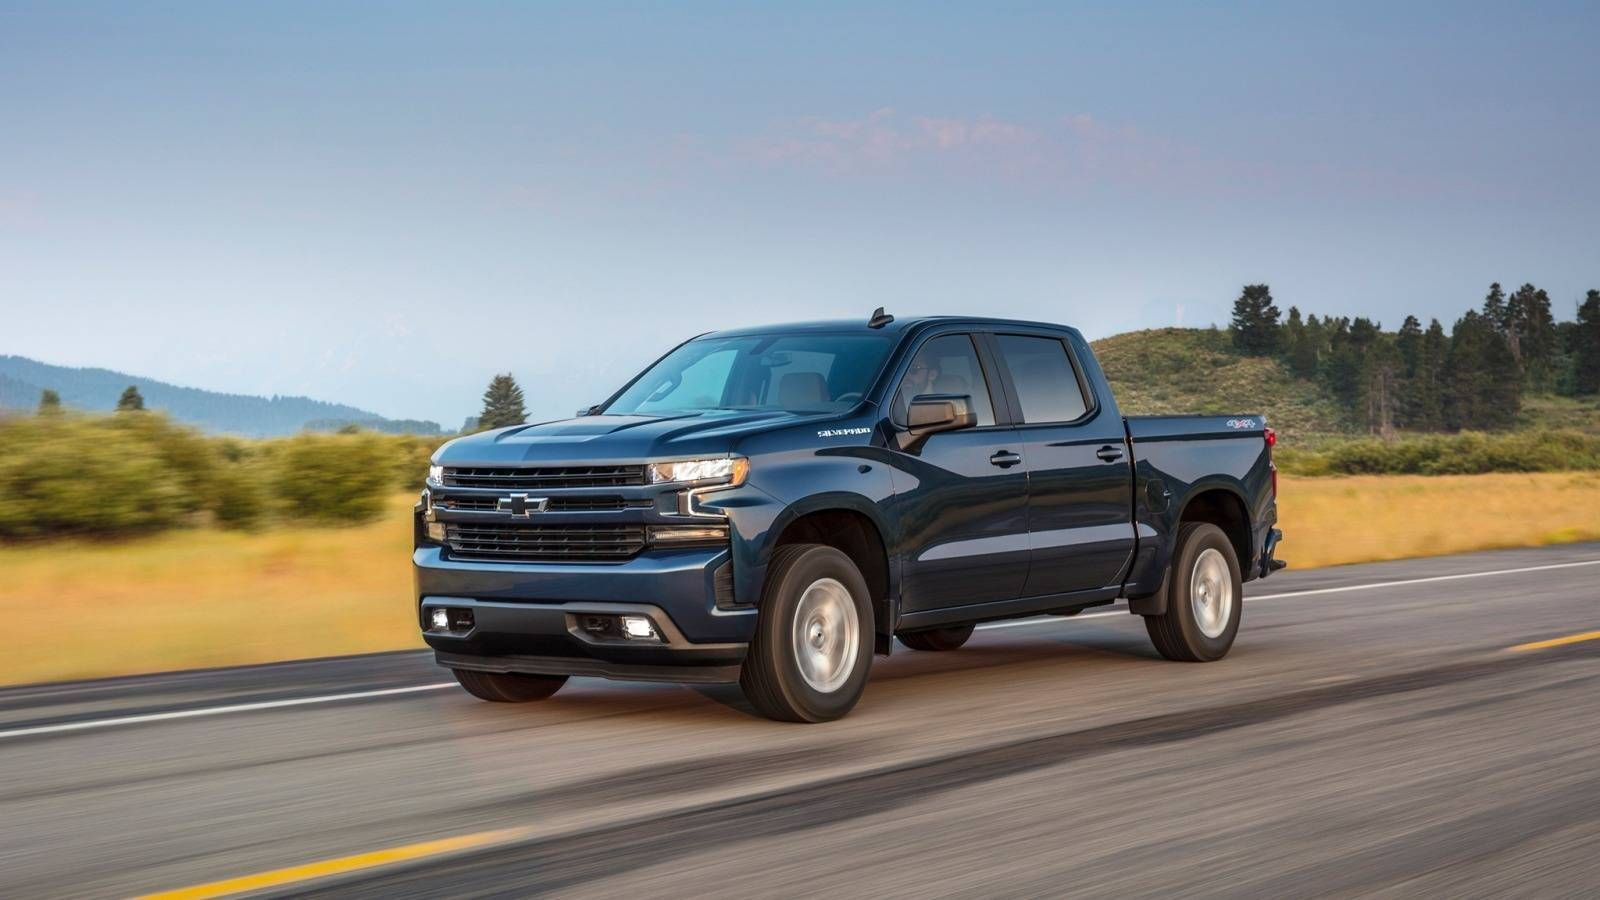 2019 Chevy Silverado 1500 Interior Release Configurations Price